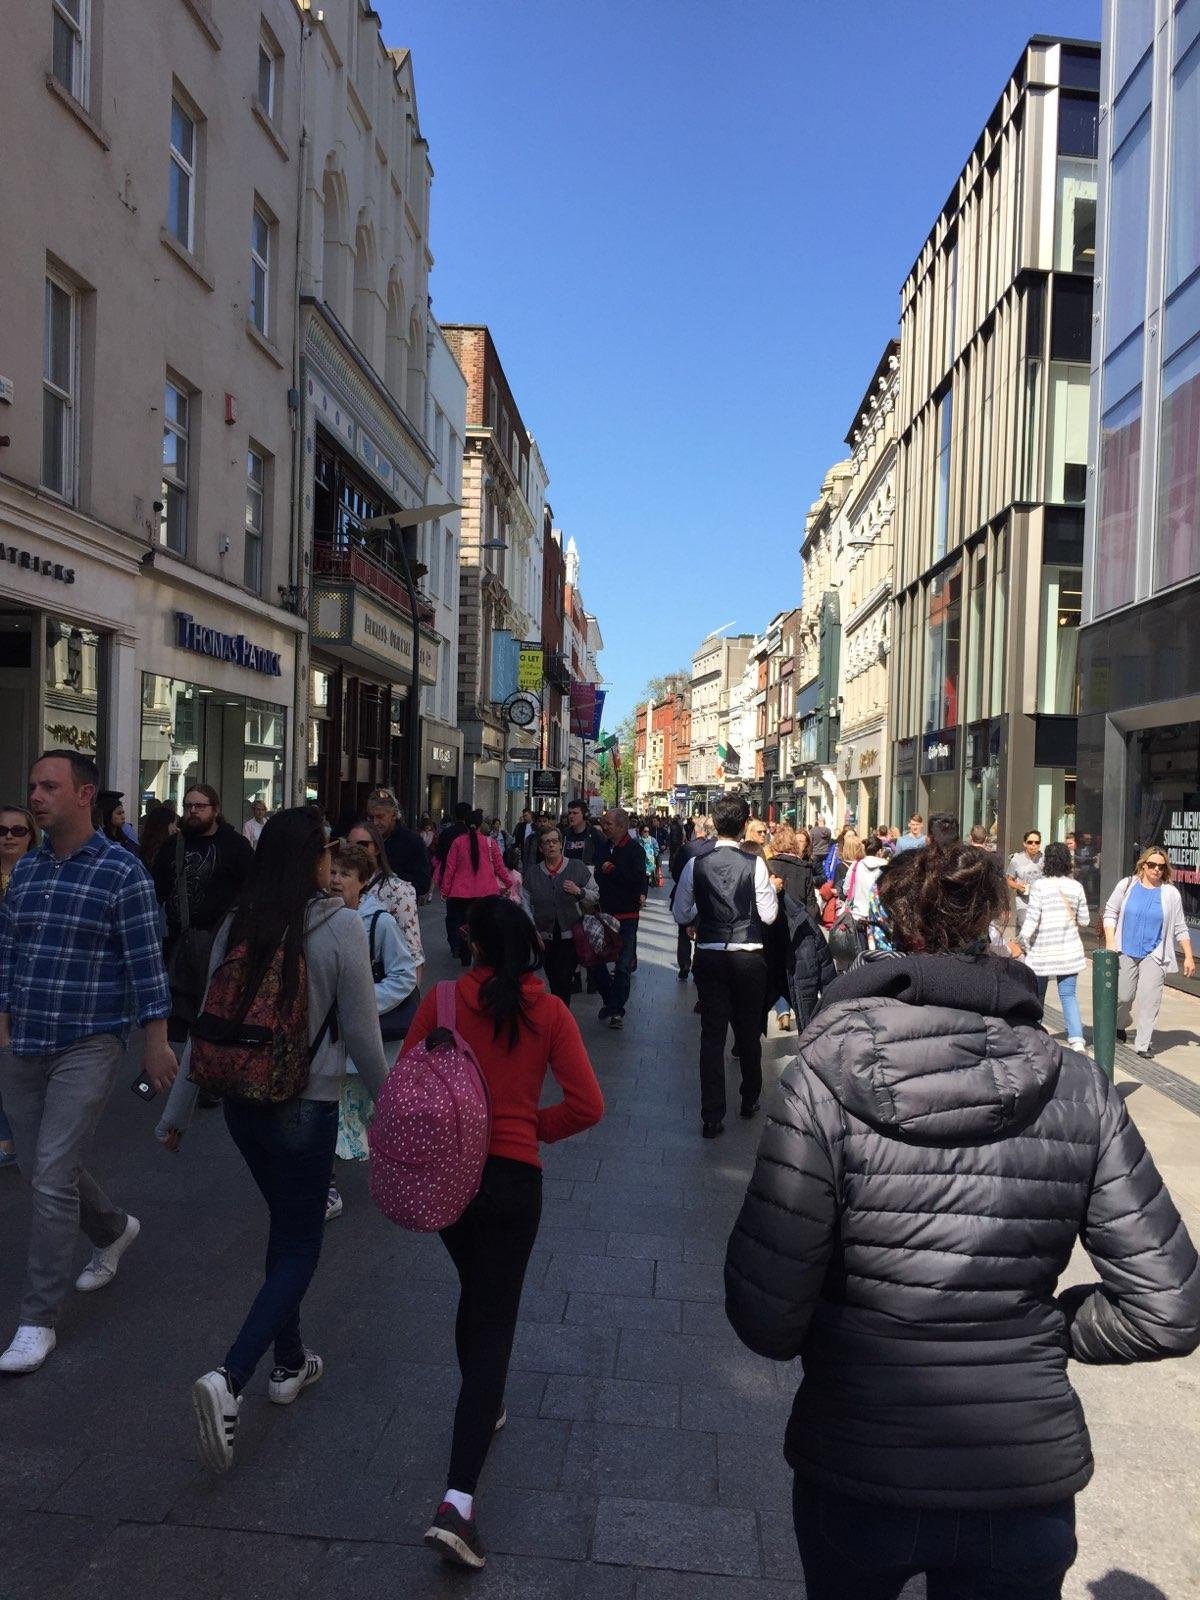 Back in the mix of hustle and bustle along Grafton Street, the pedestrian-friendly street